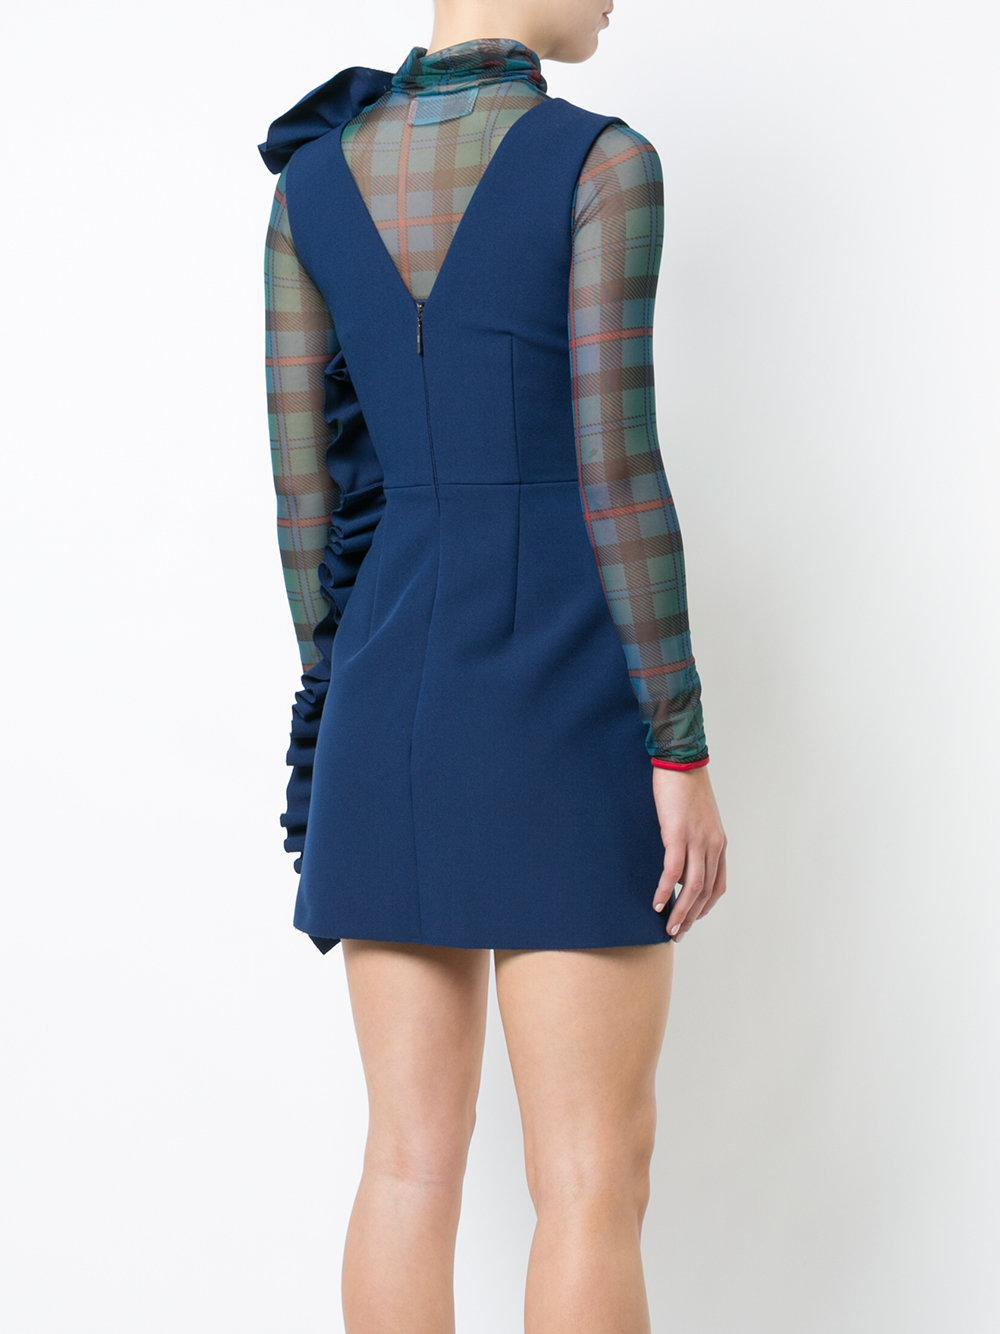 fitted sleeveless ruffle dress - Blue Msgm 2018 New Online 8xqqTMHo